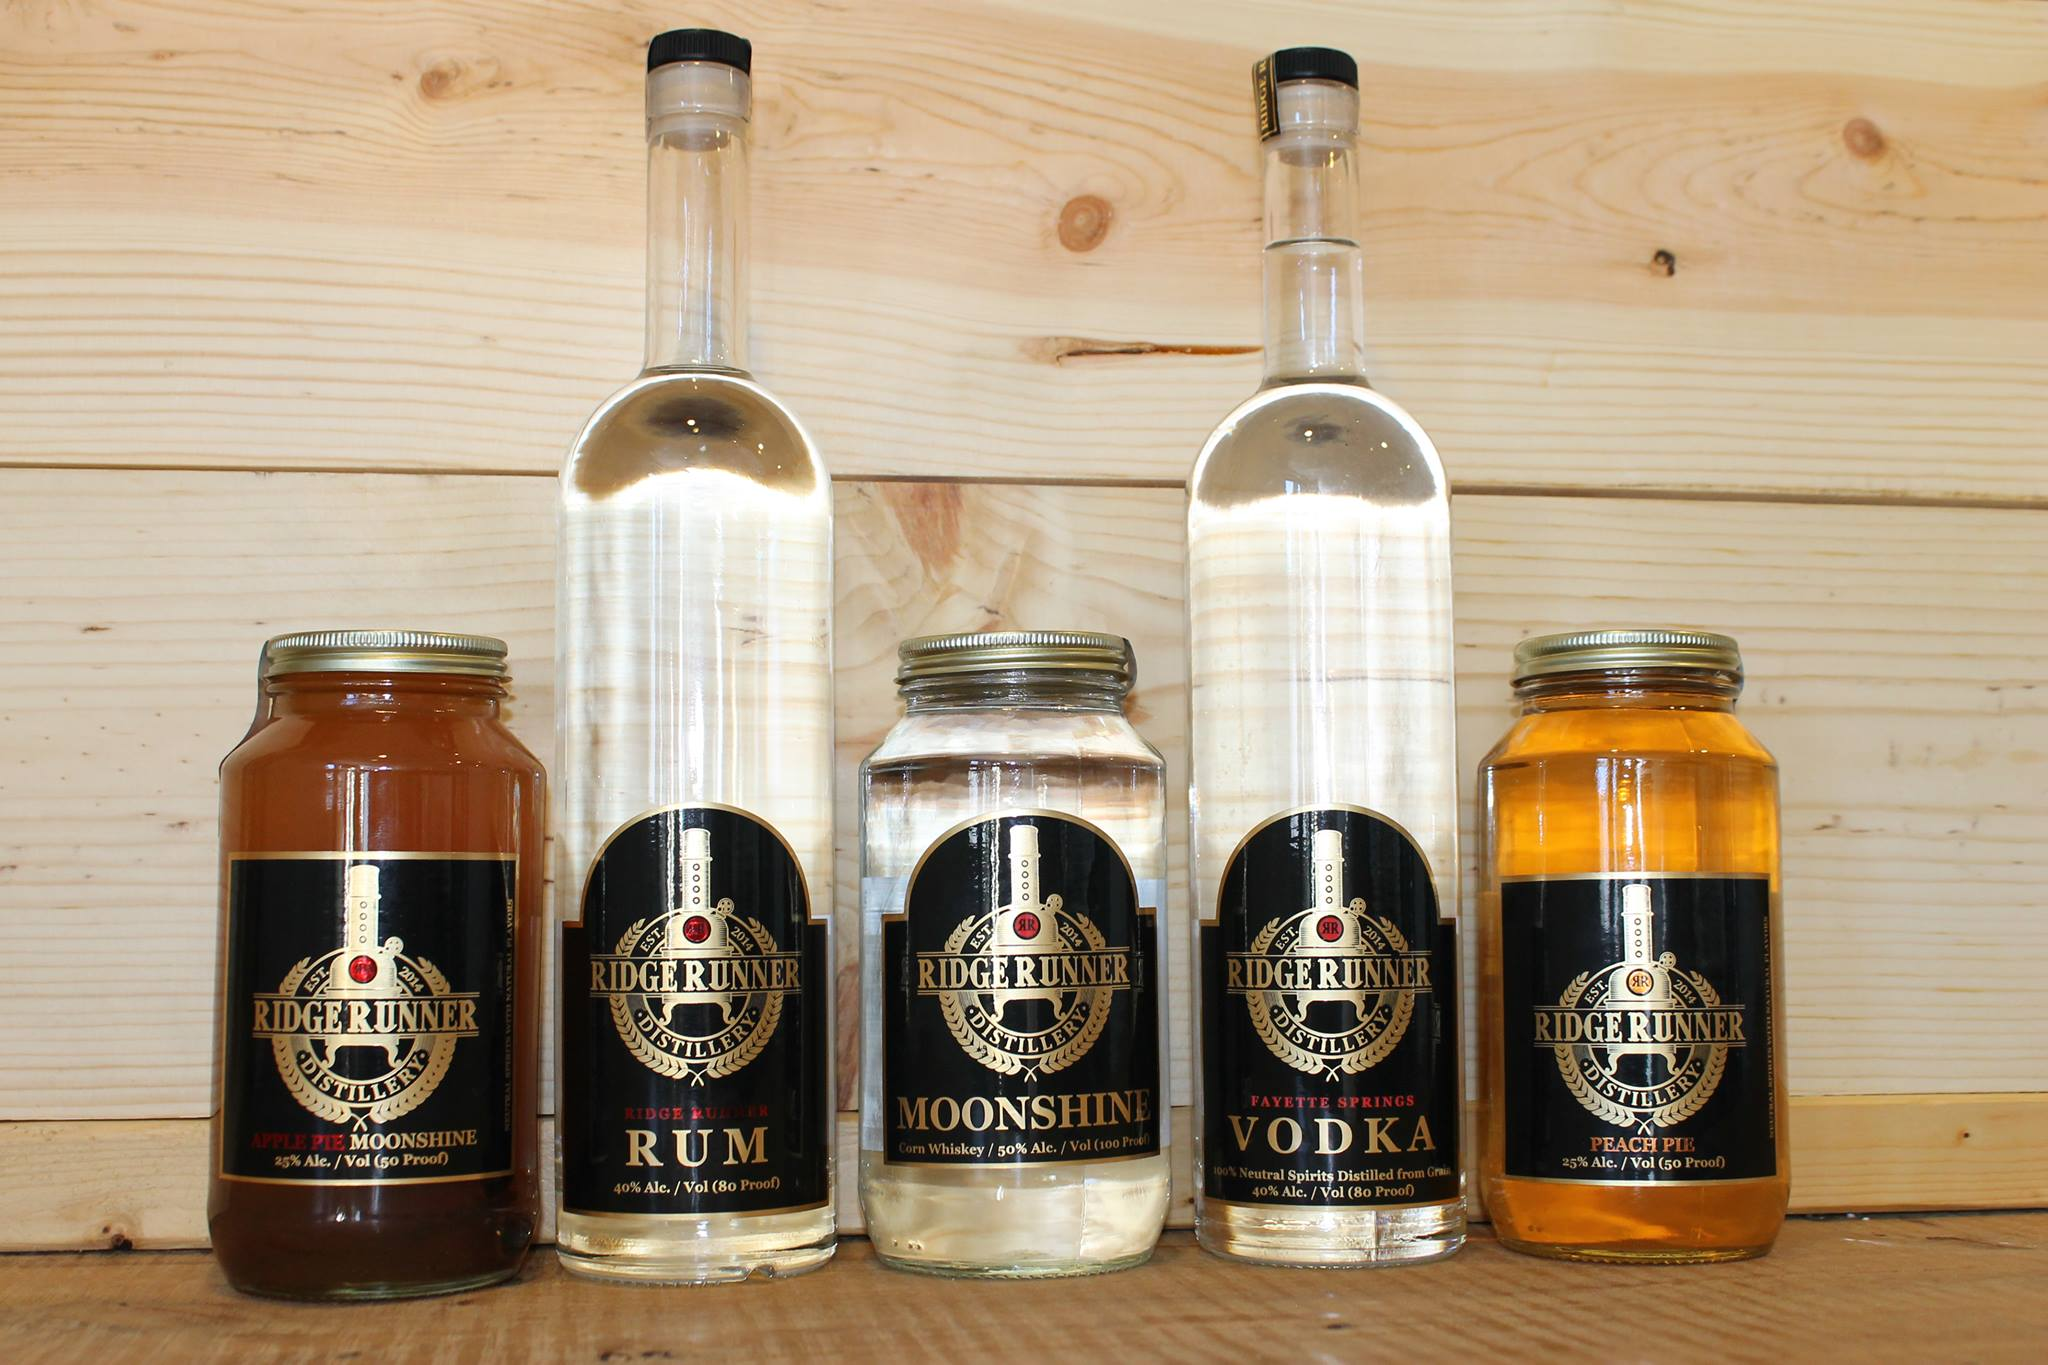 bottles of ridge runner spirits